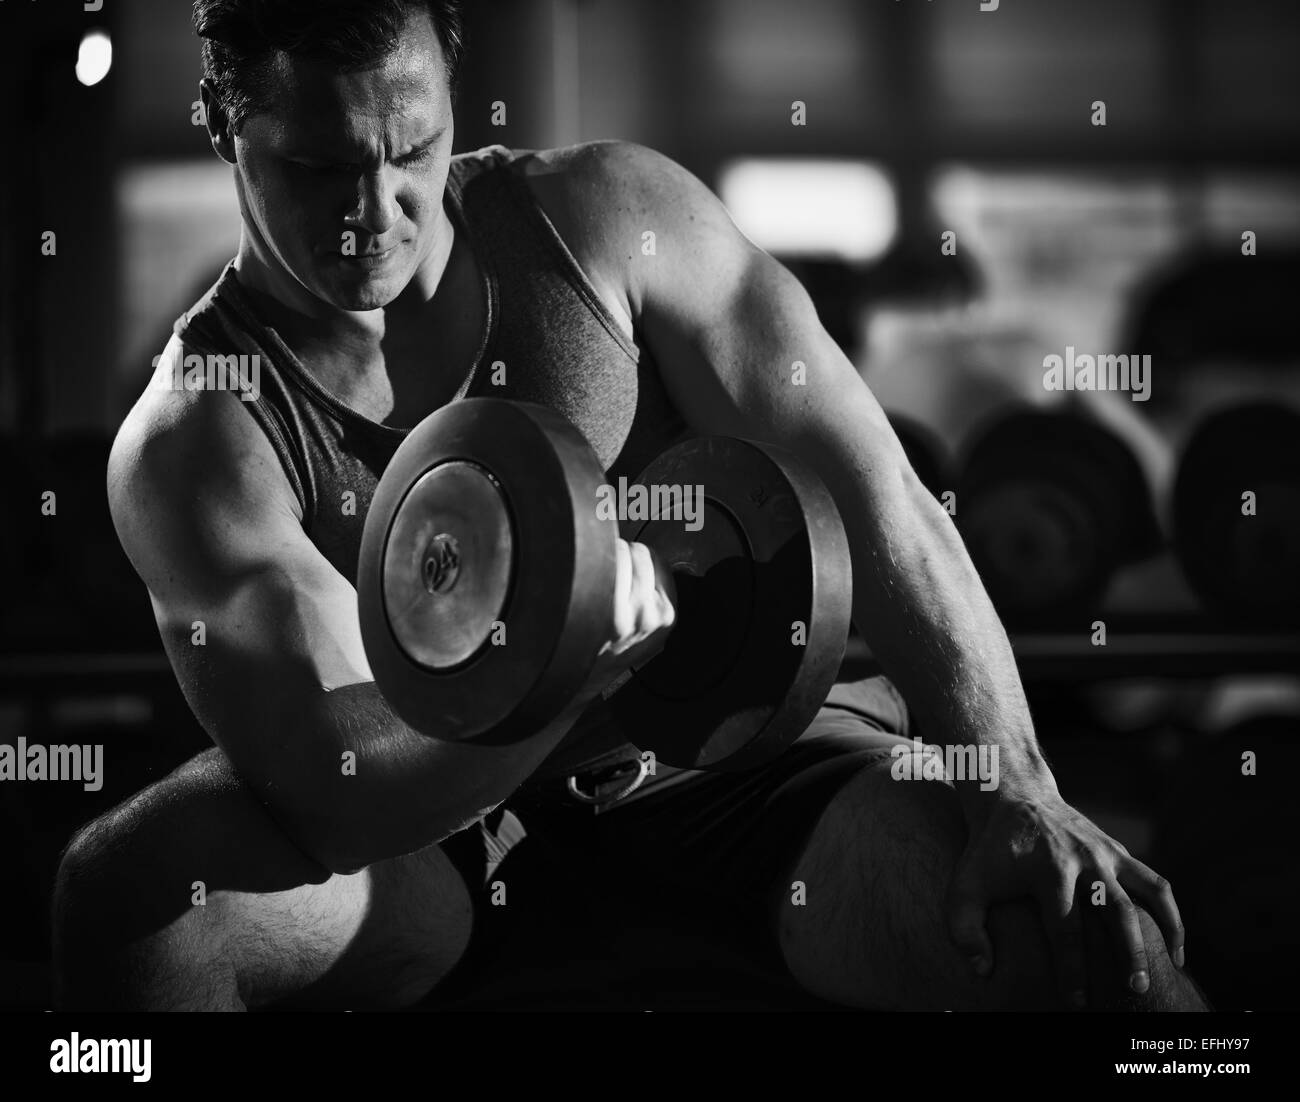 Young muscular man with barbell exercising in gym - Stock Image